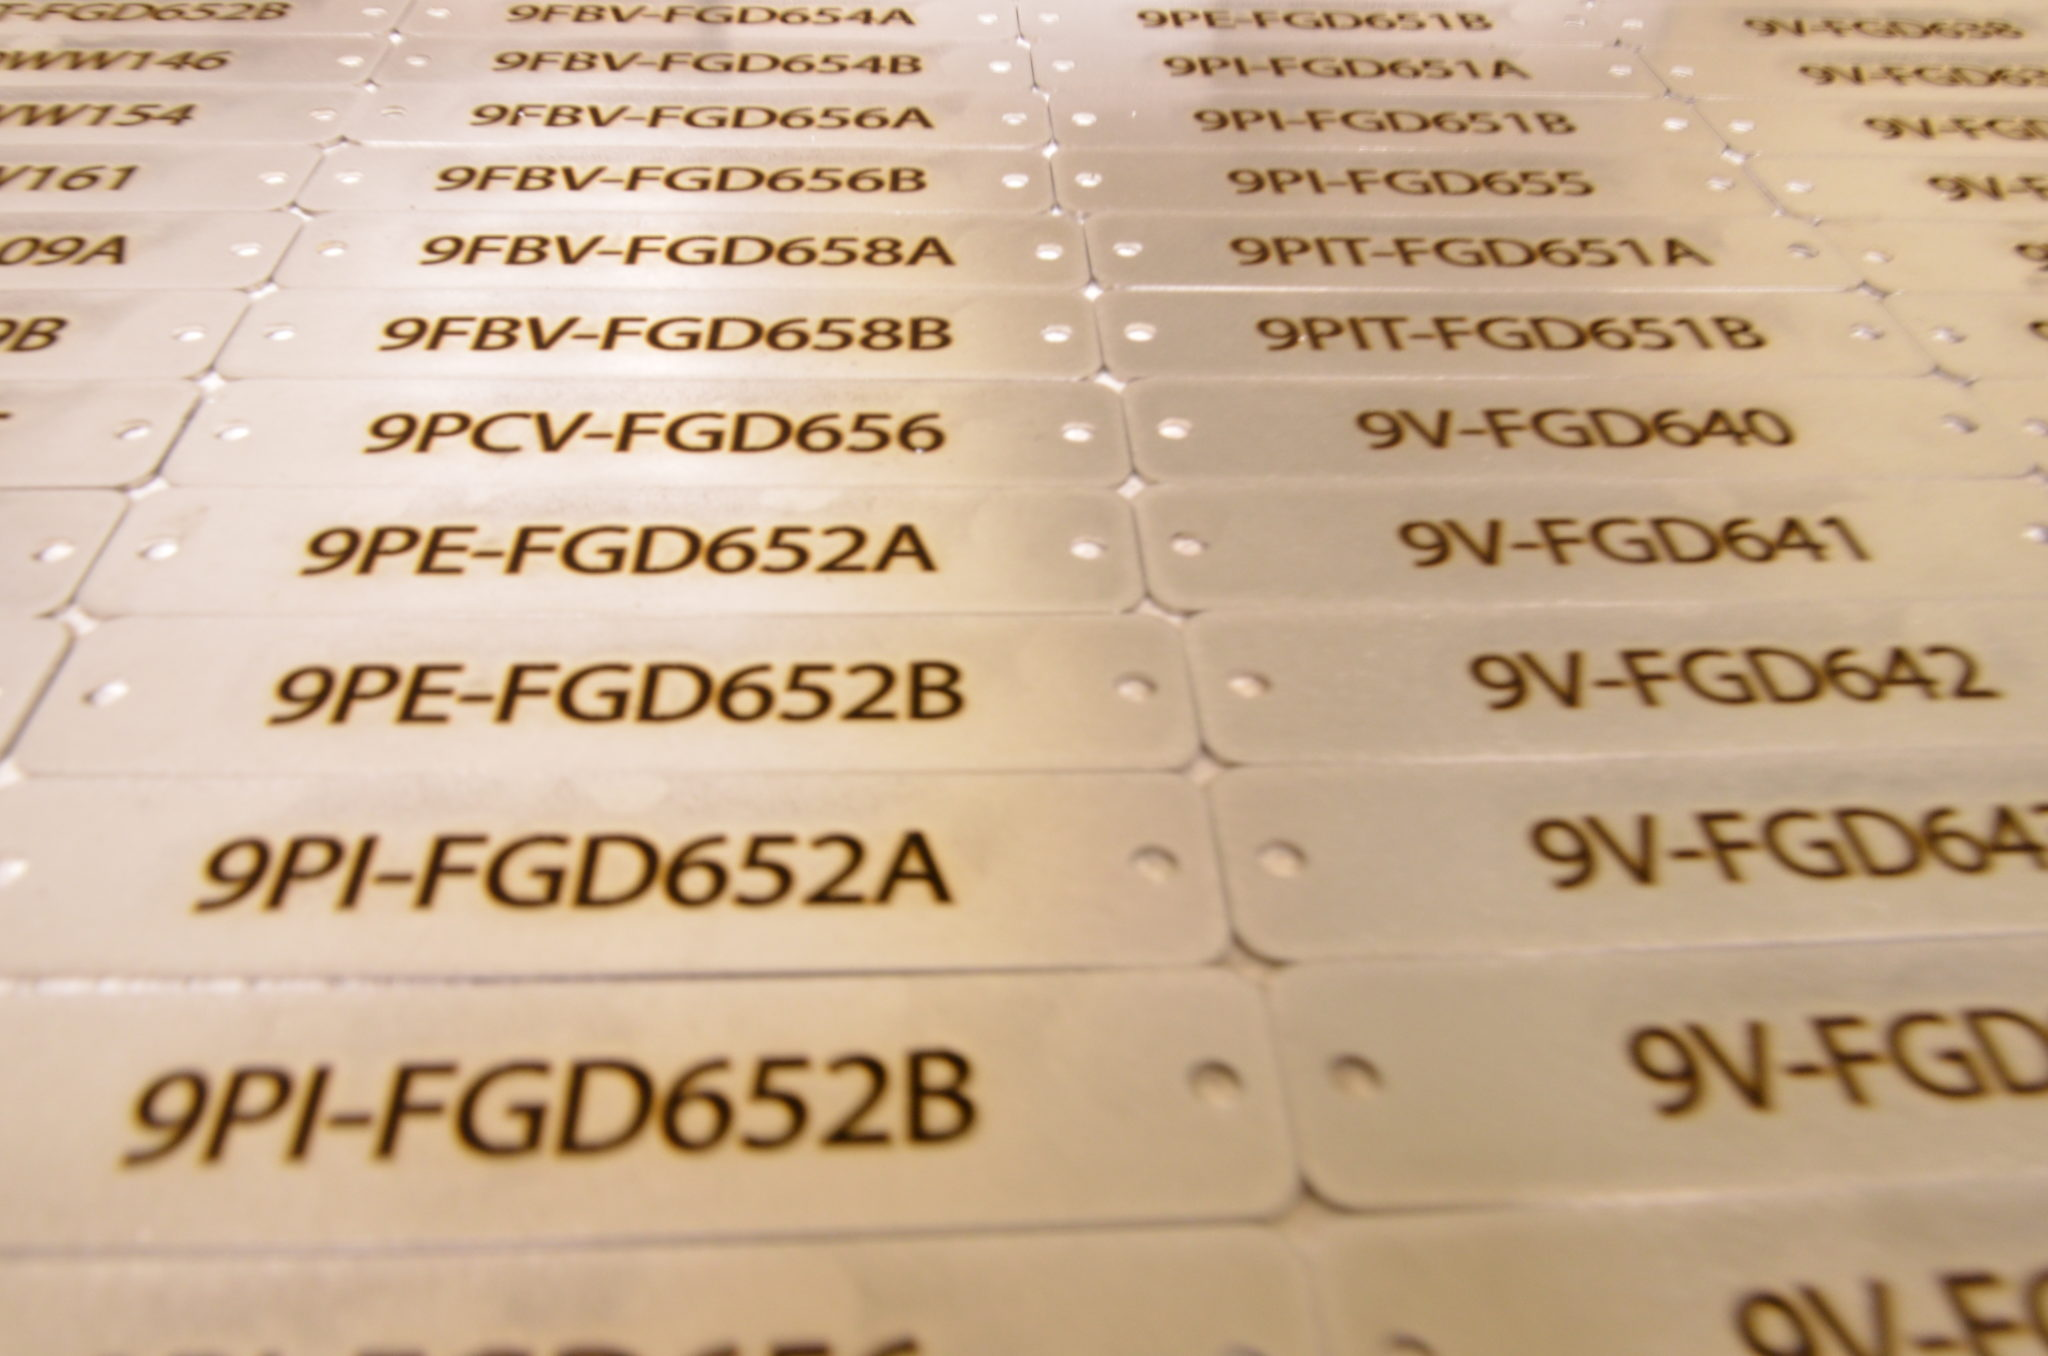 Custom Metal Tags: Simply the Best Way to Track, Identify and Inventory!